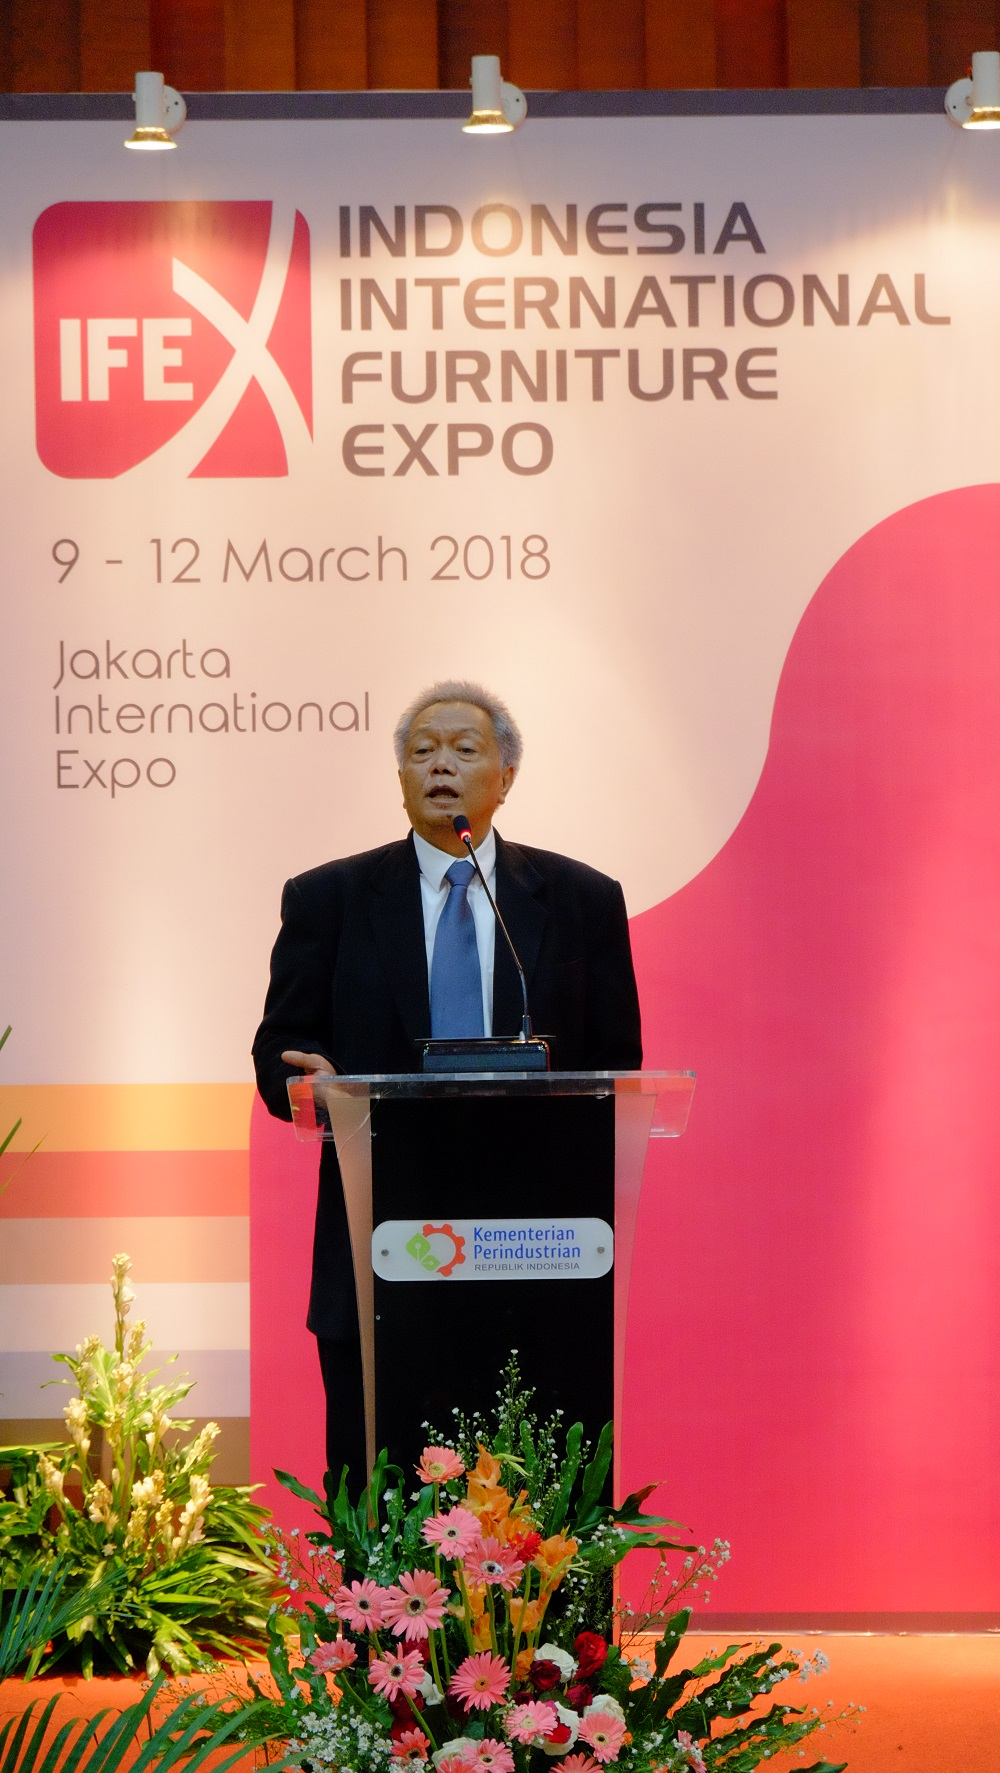 Indonesia International Furniture Expo (IFEX) 2018: Annual Momentum to Introduce The Excellence of Indonesian Furniture and Craft Manufacturers